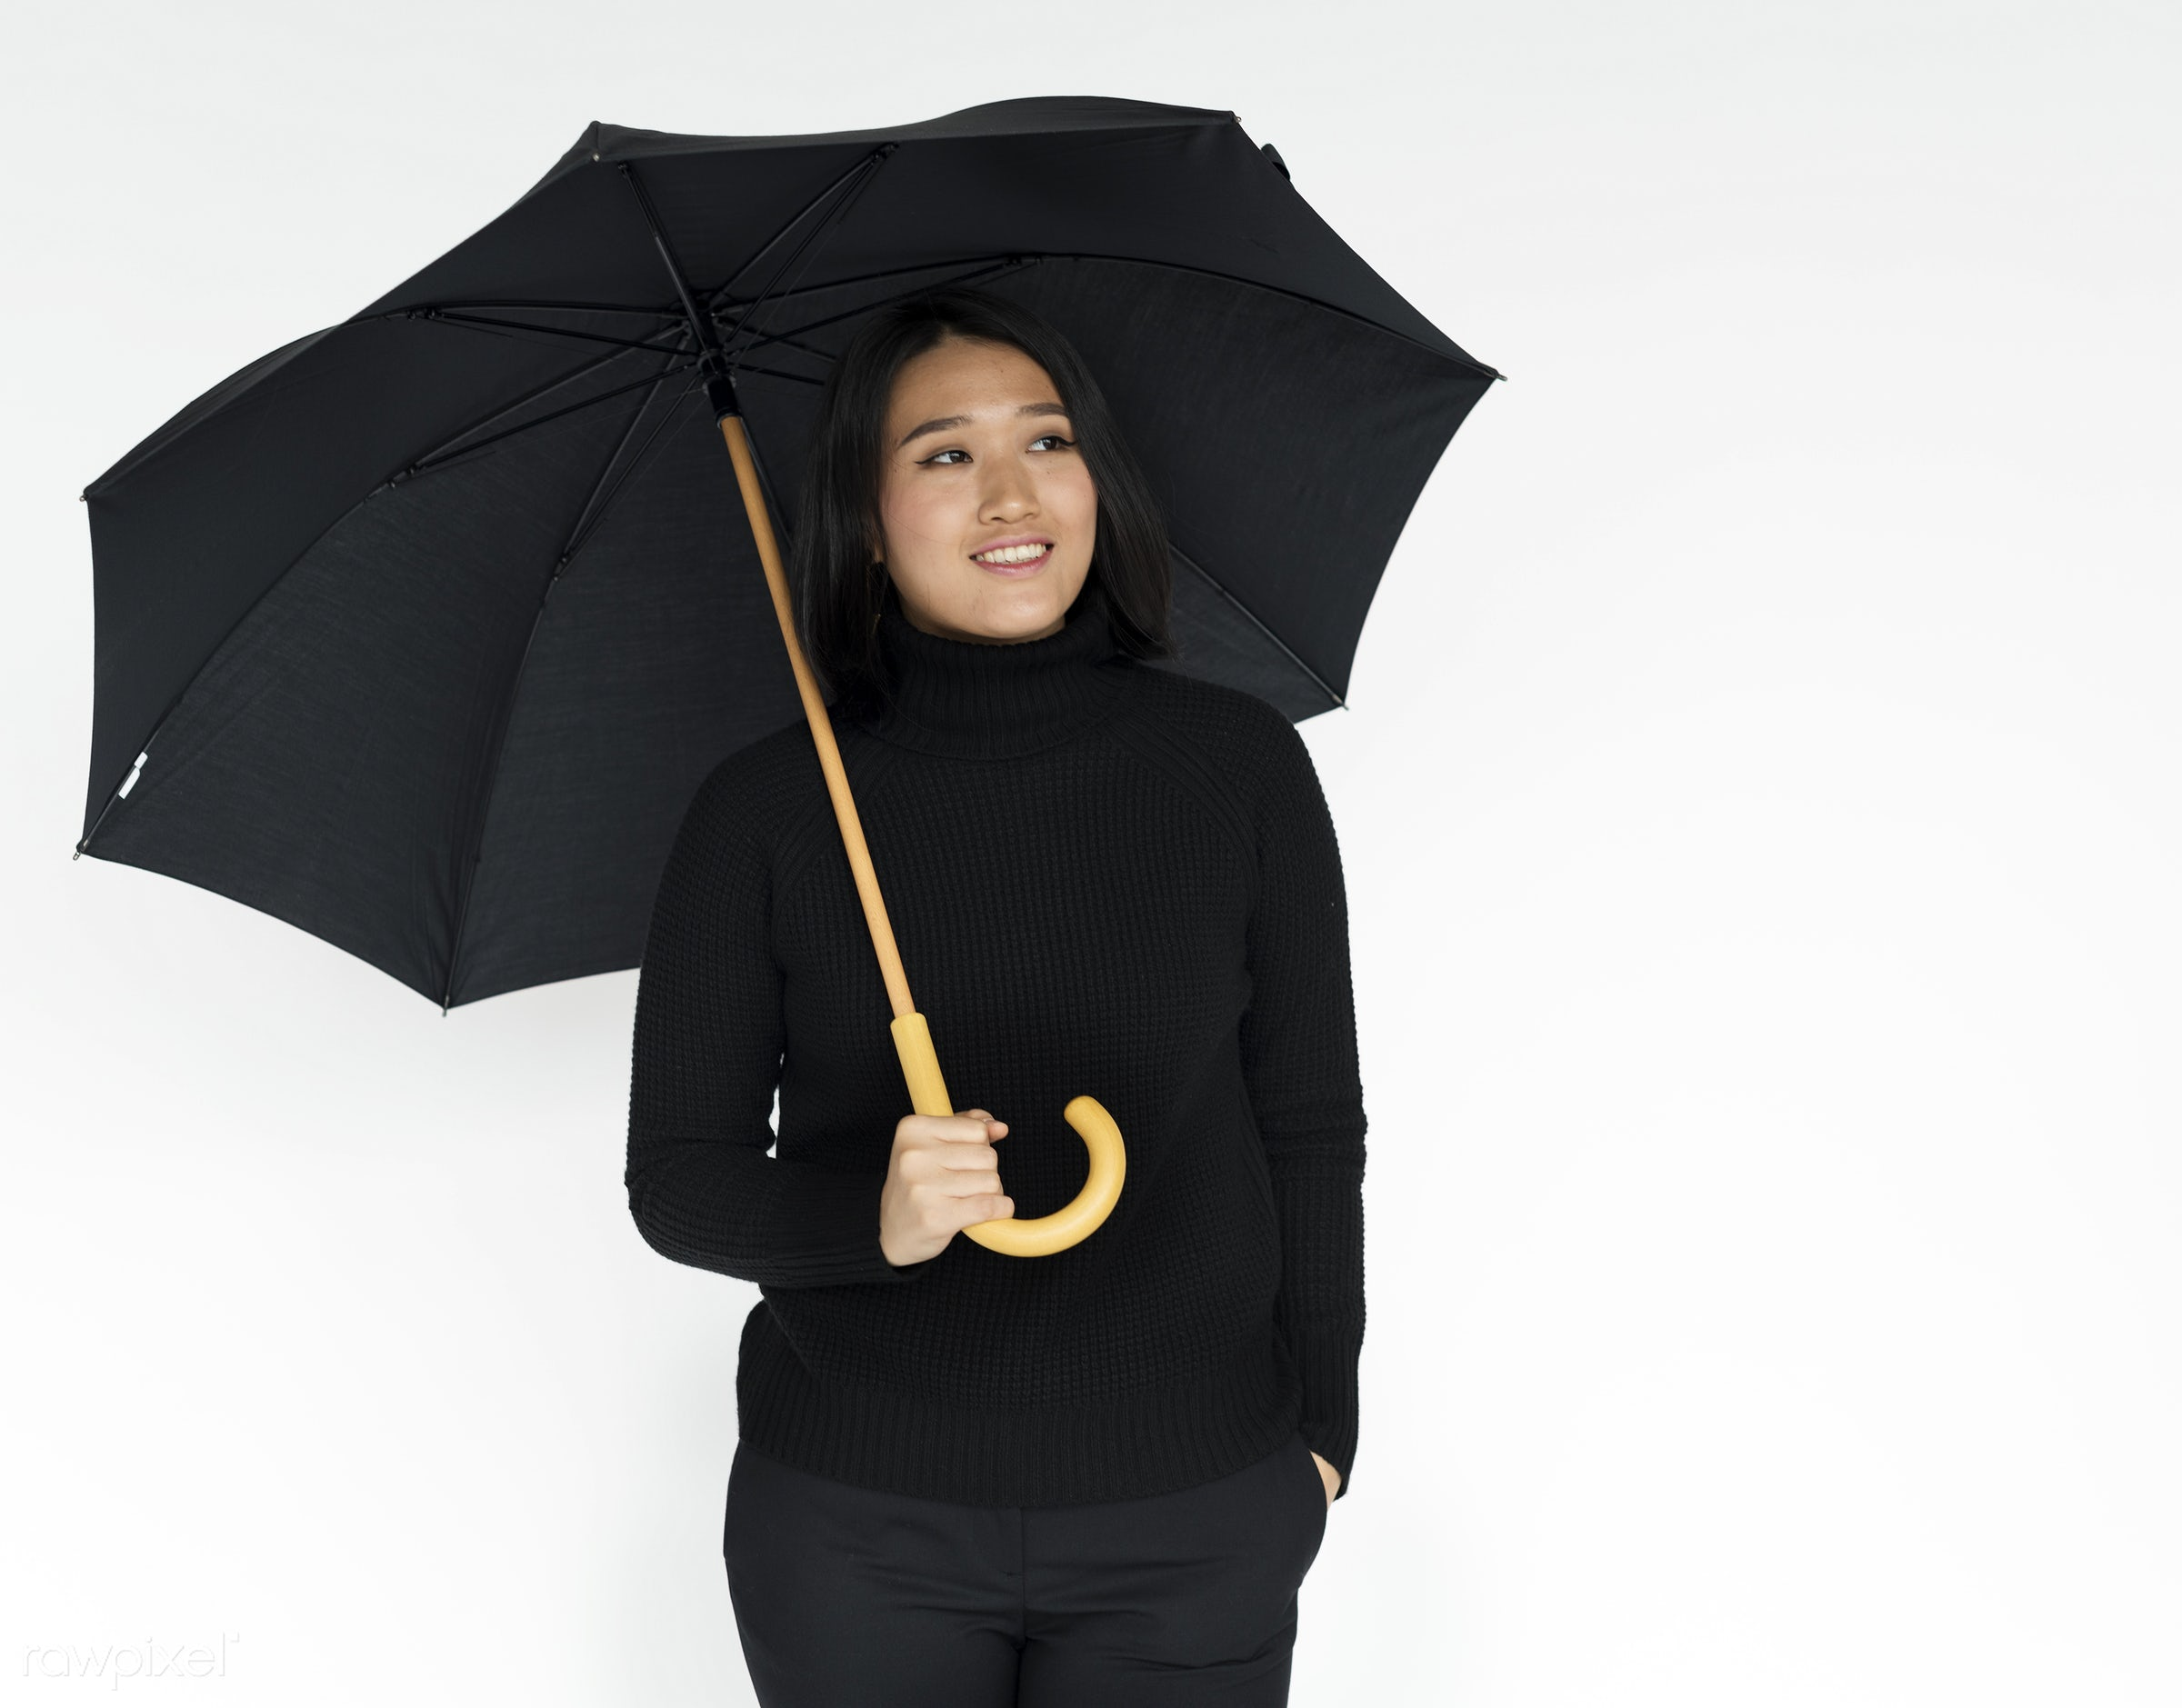 expression, studio, person, holding, people, woman, weather, positive, smile, cheerful, black, smiling, isolated, umbrella,...